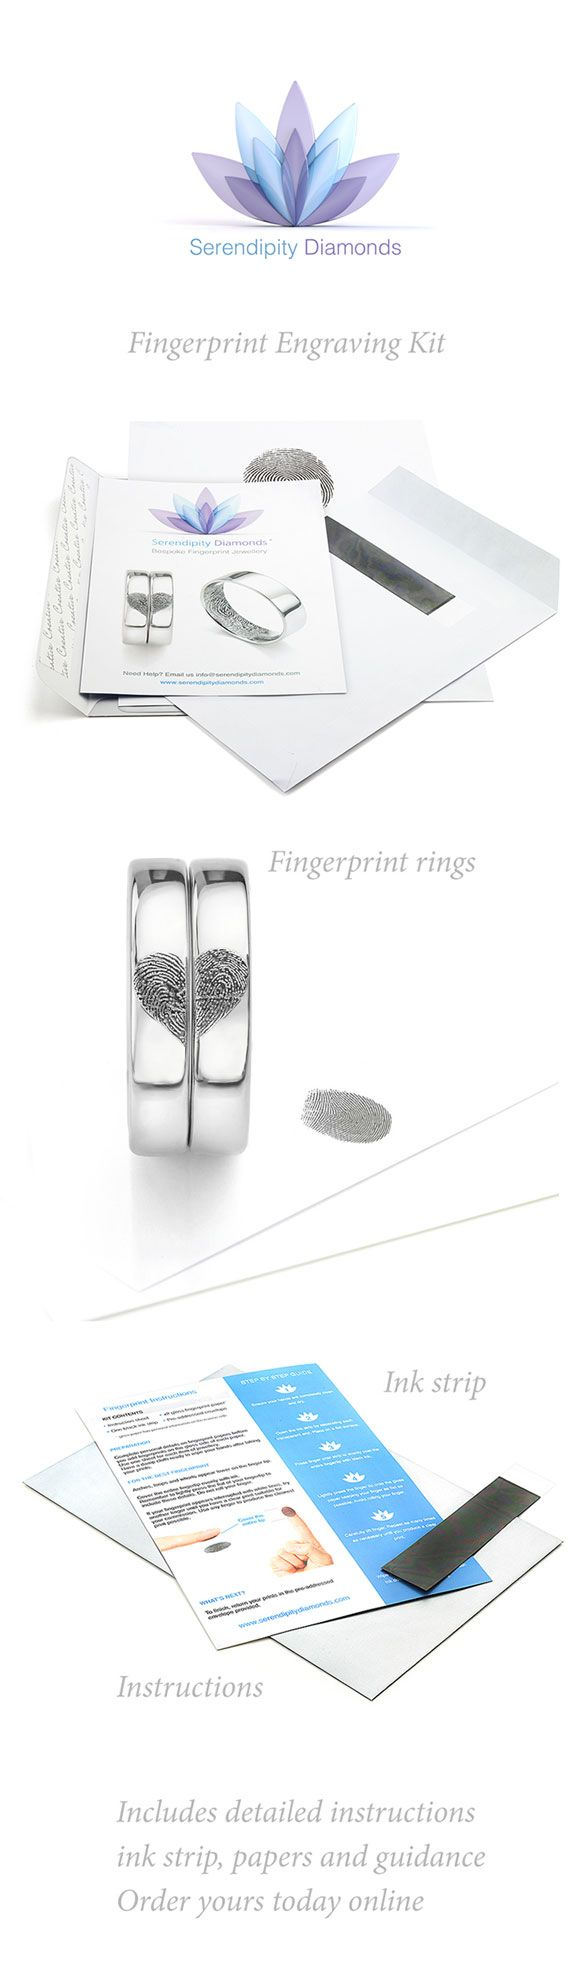 Fingerprint engraving kit from Serendipity Diamonds. Start by purchasing the kit, refunded against a wedding ring order, or receive free of charge when you order your bespoke fingerprint wedding rings with Serendipity Diamonds.